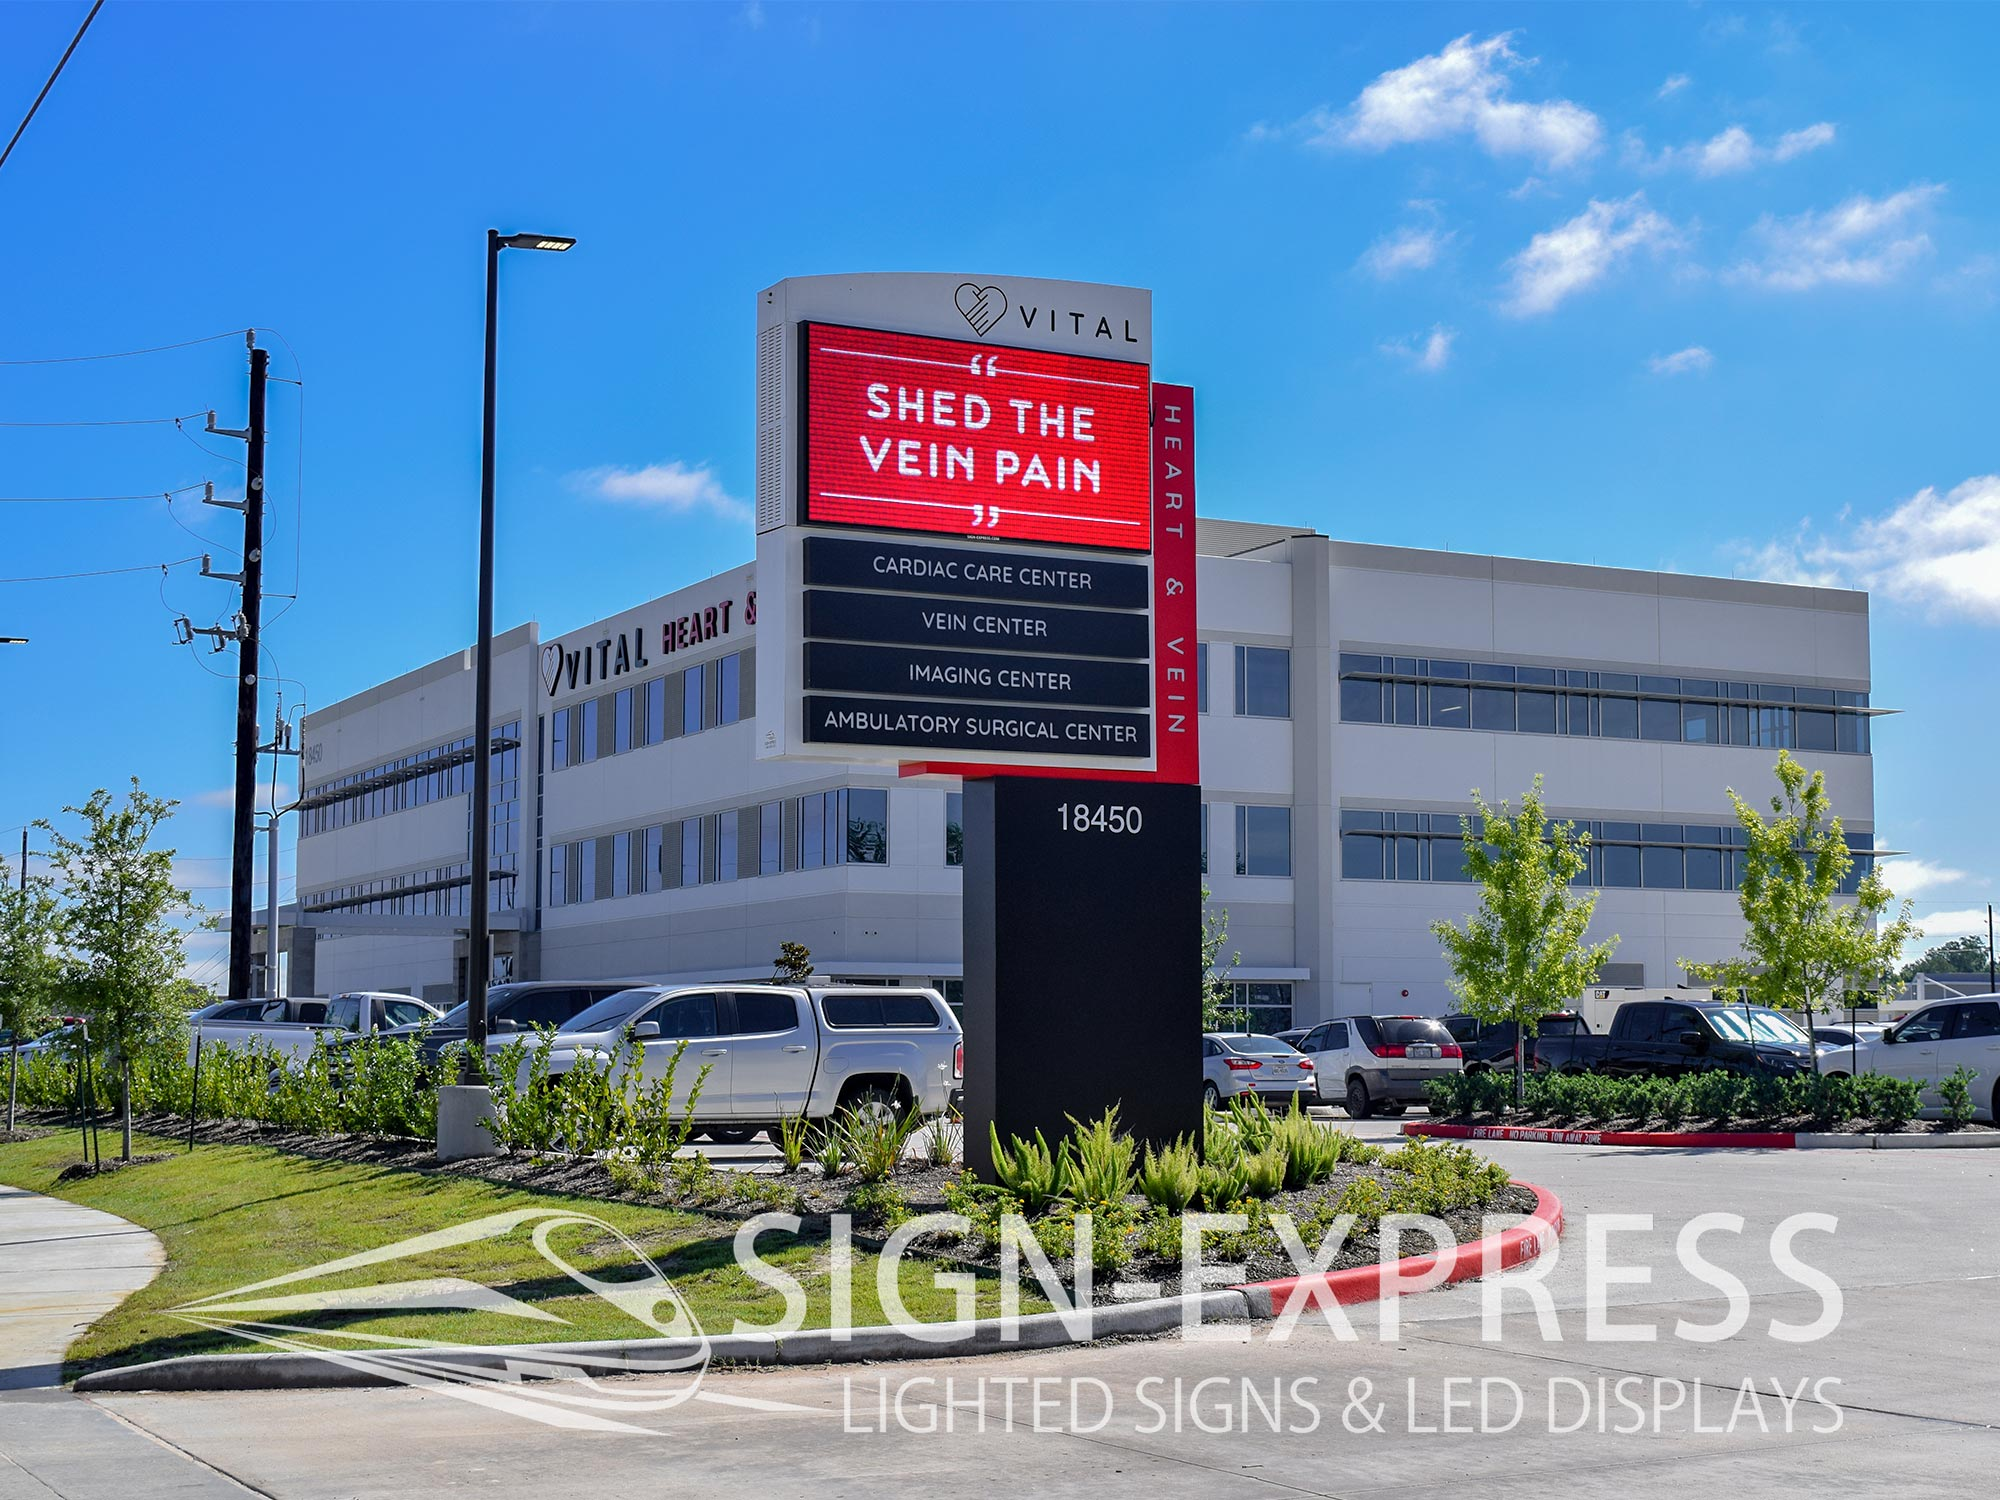 Vital Heart & Vein LED Sign